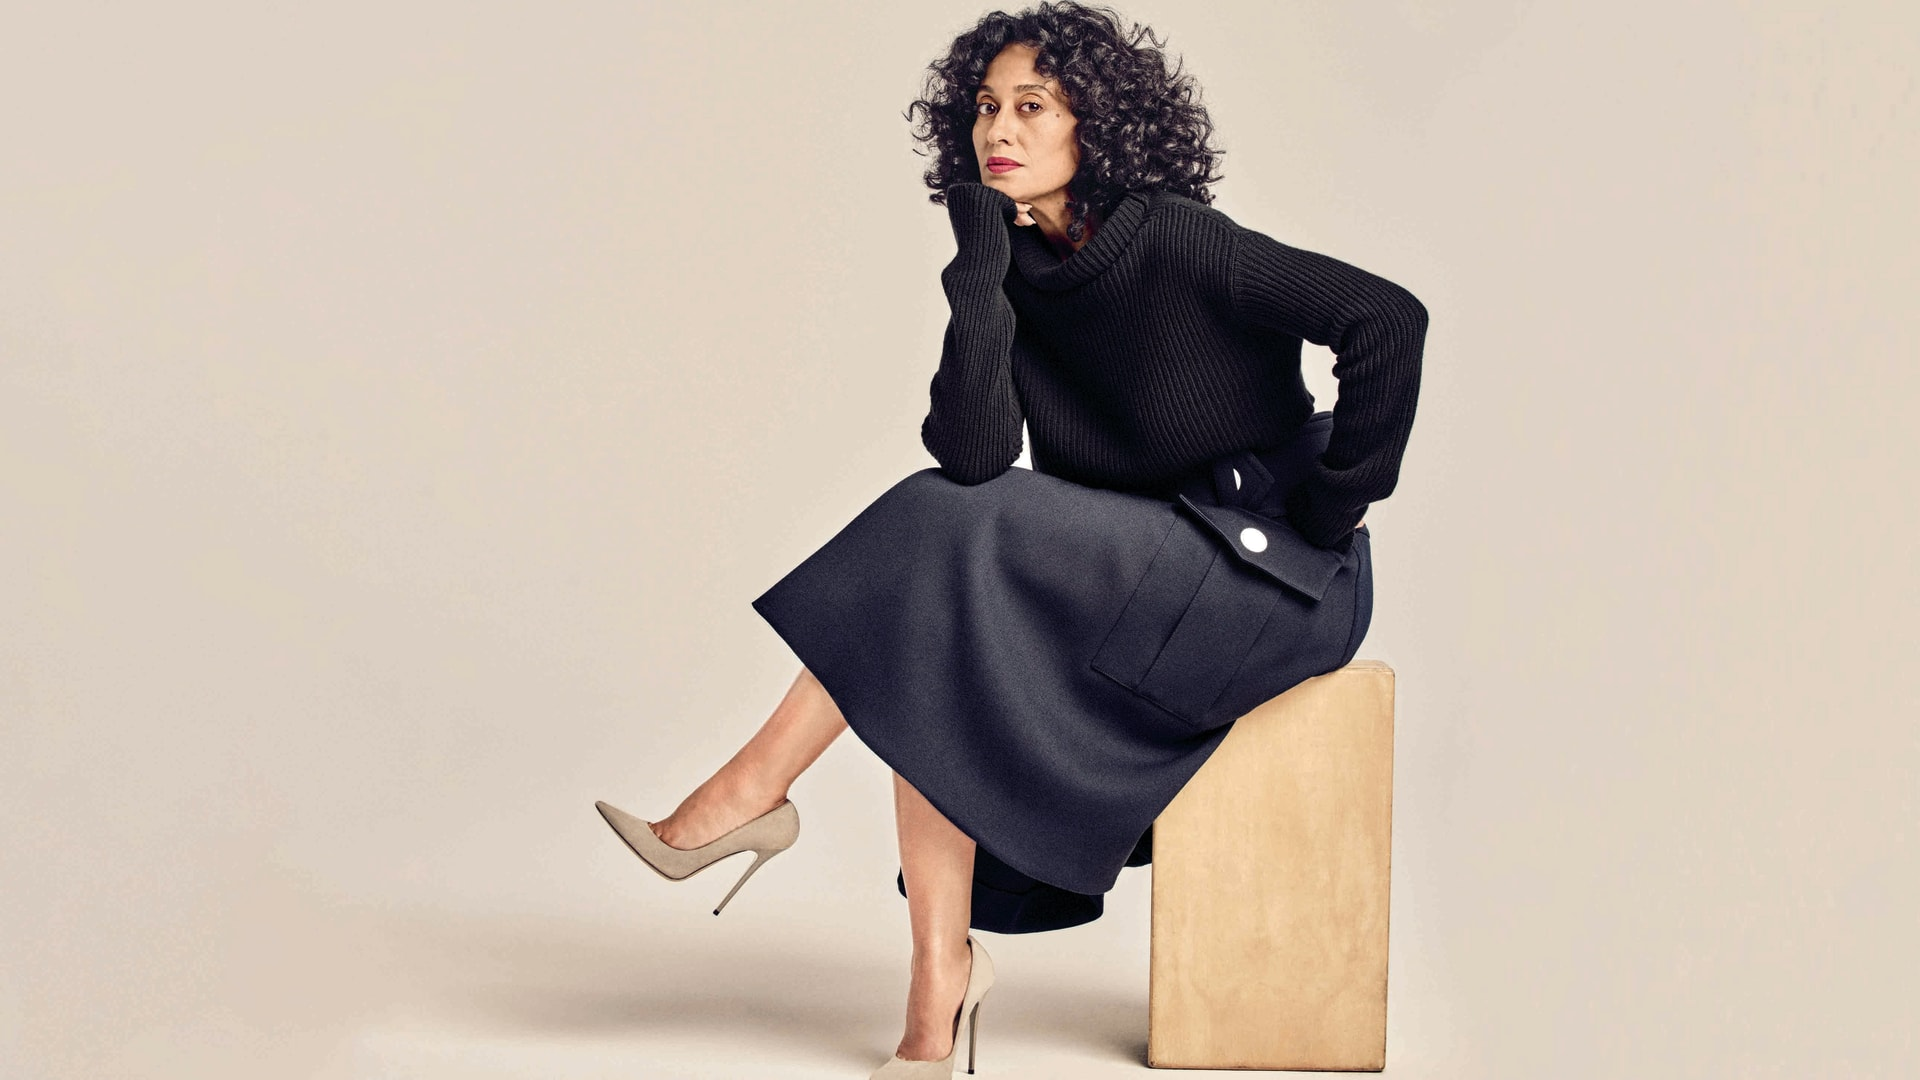 Tracee Ellis Ross is known for her lead roles in Girlfriends and Black-ish.